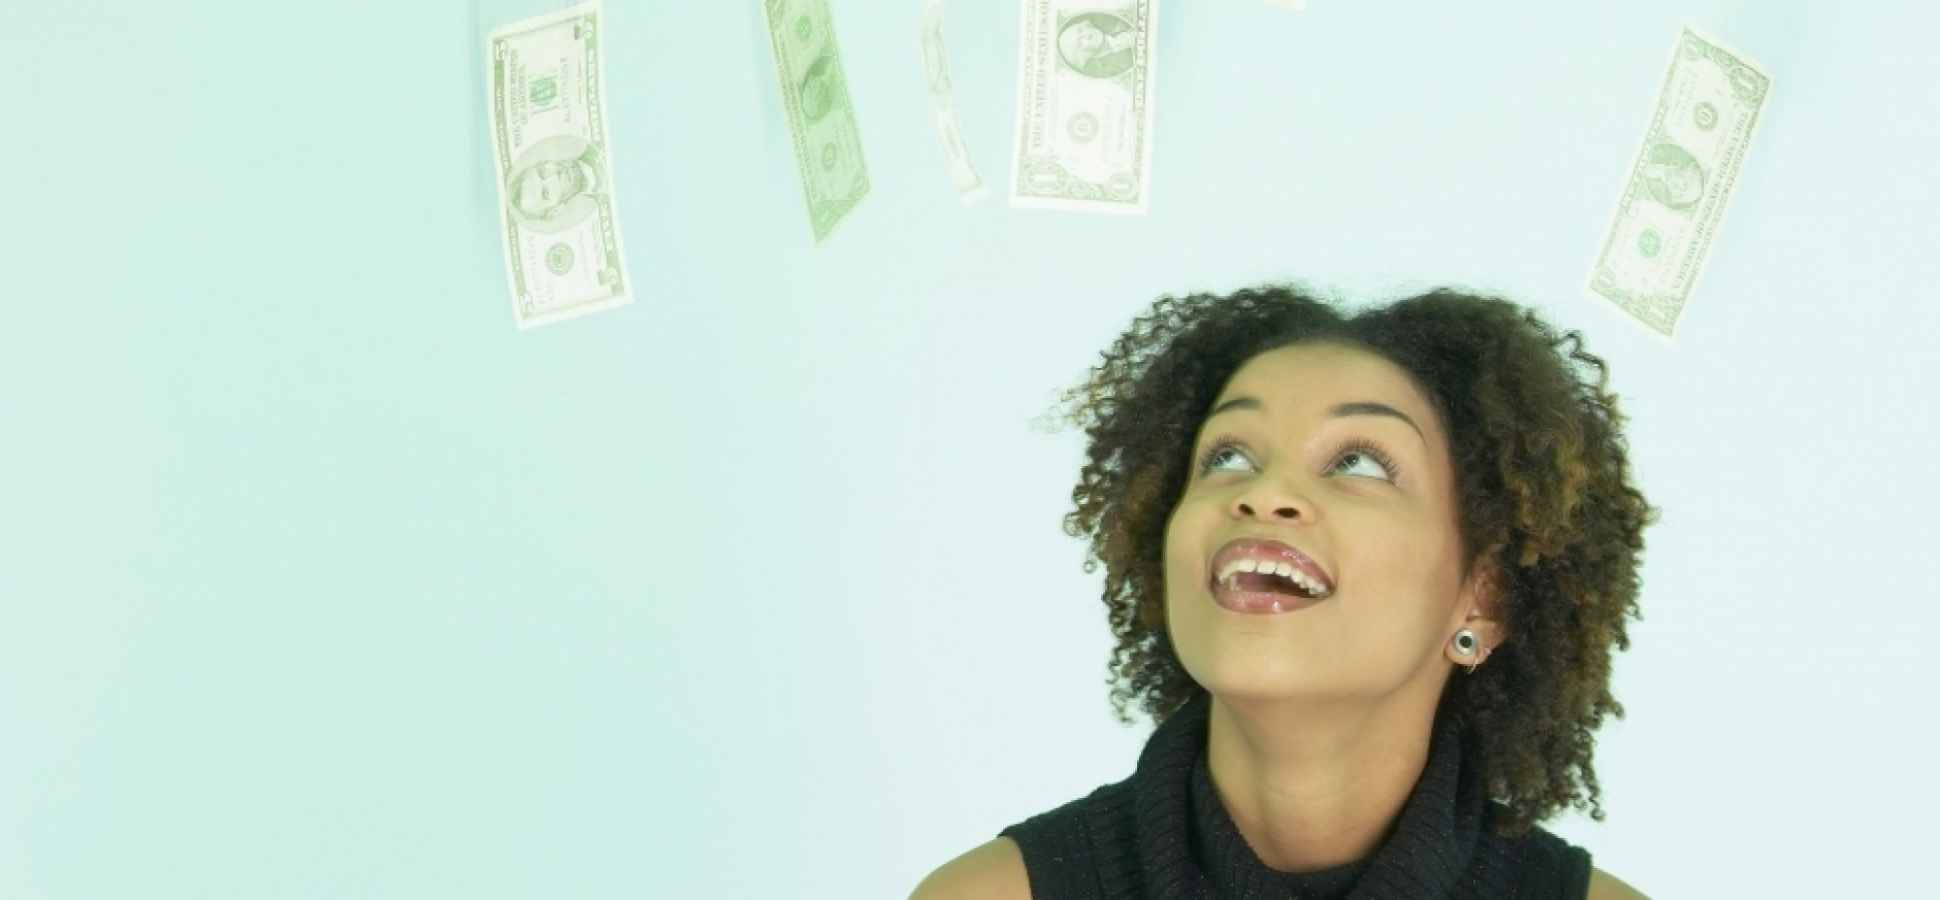 3 Reasons Now Is the Time for Female Founders to Land Venture Capital